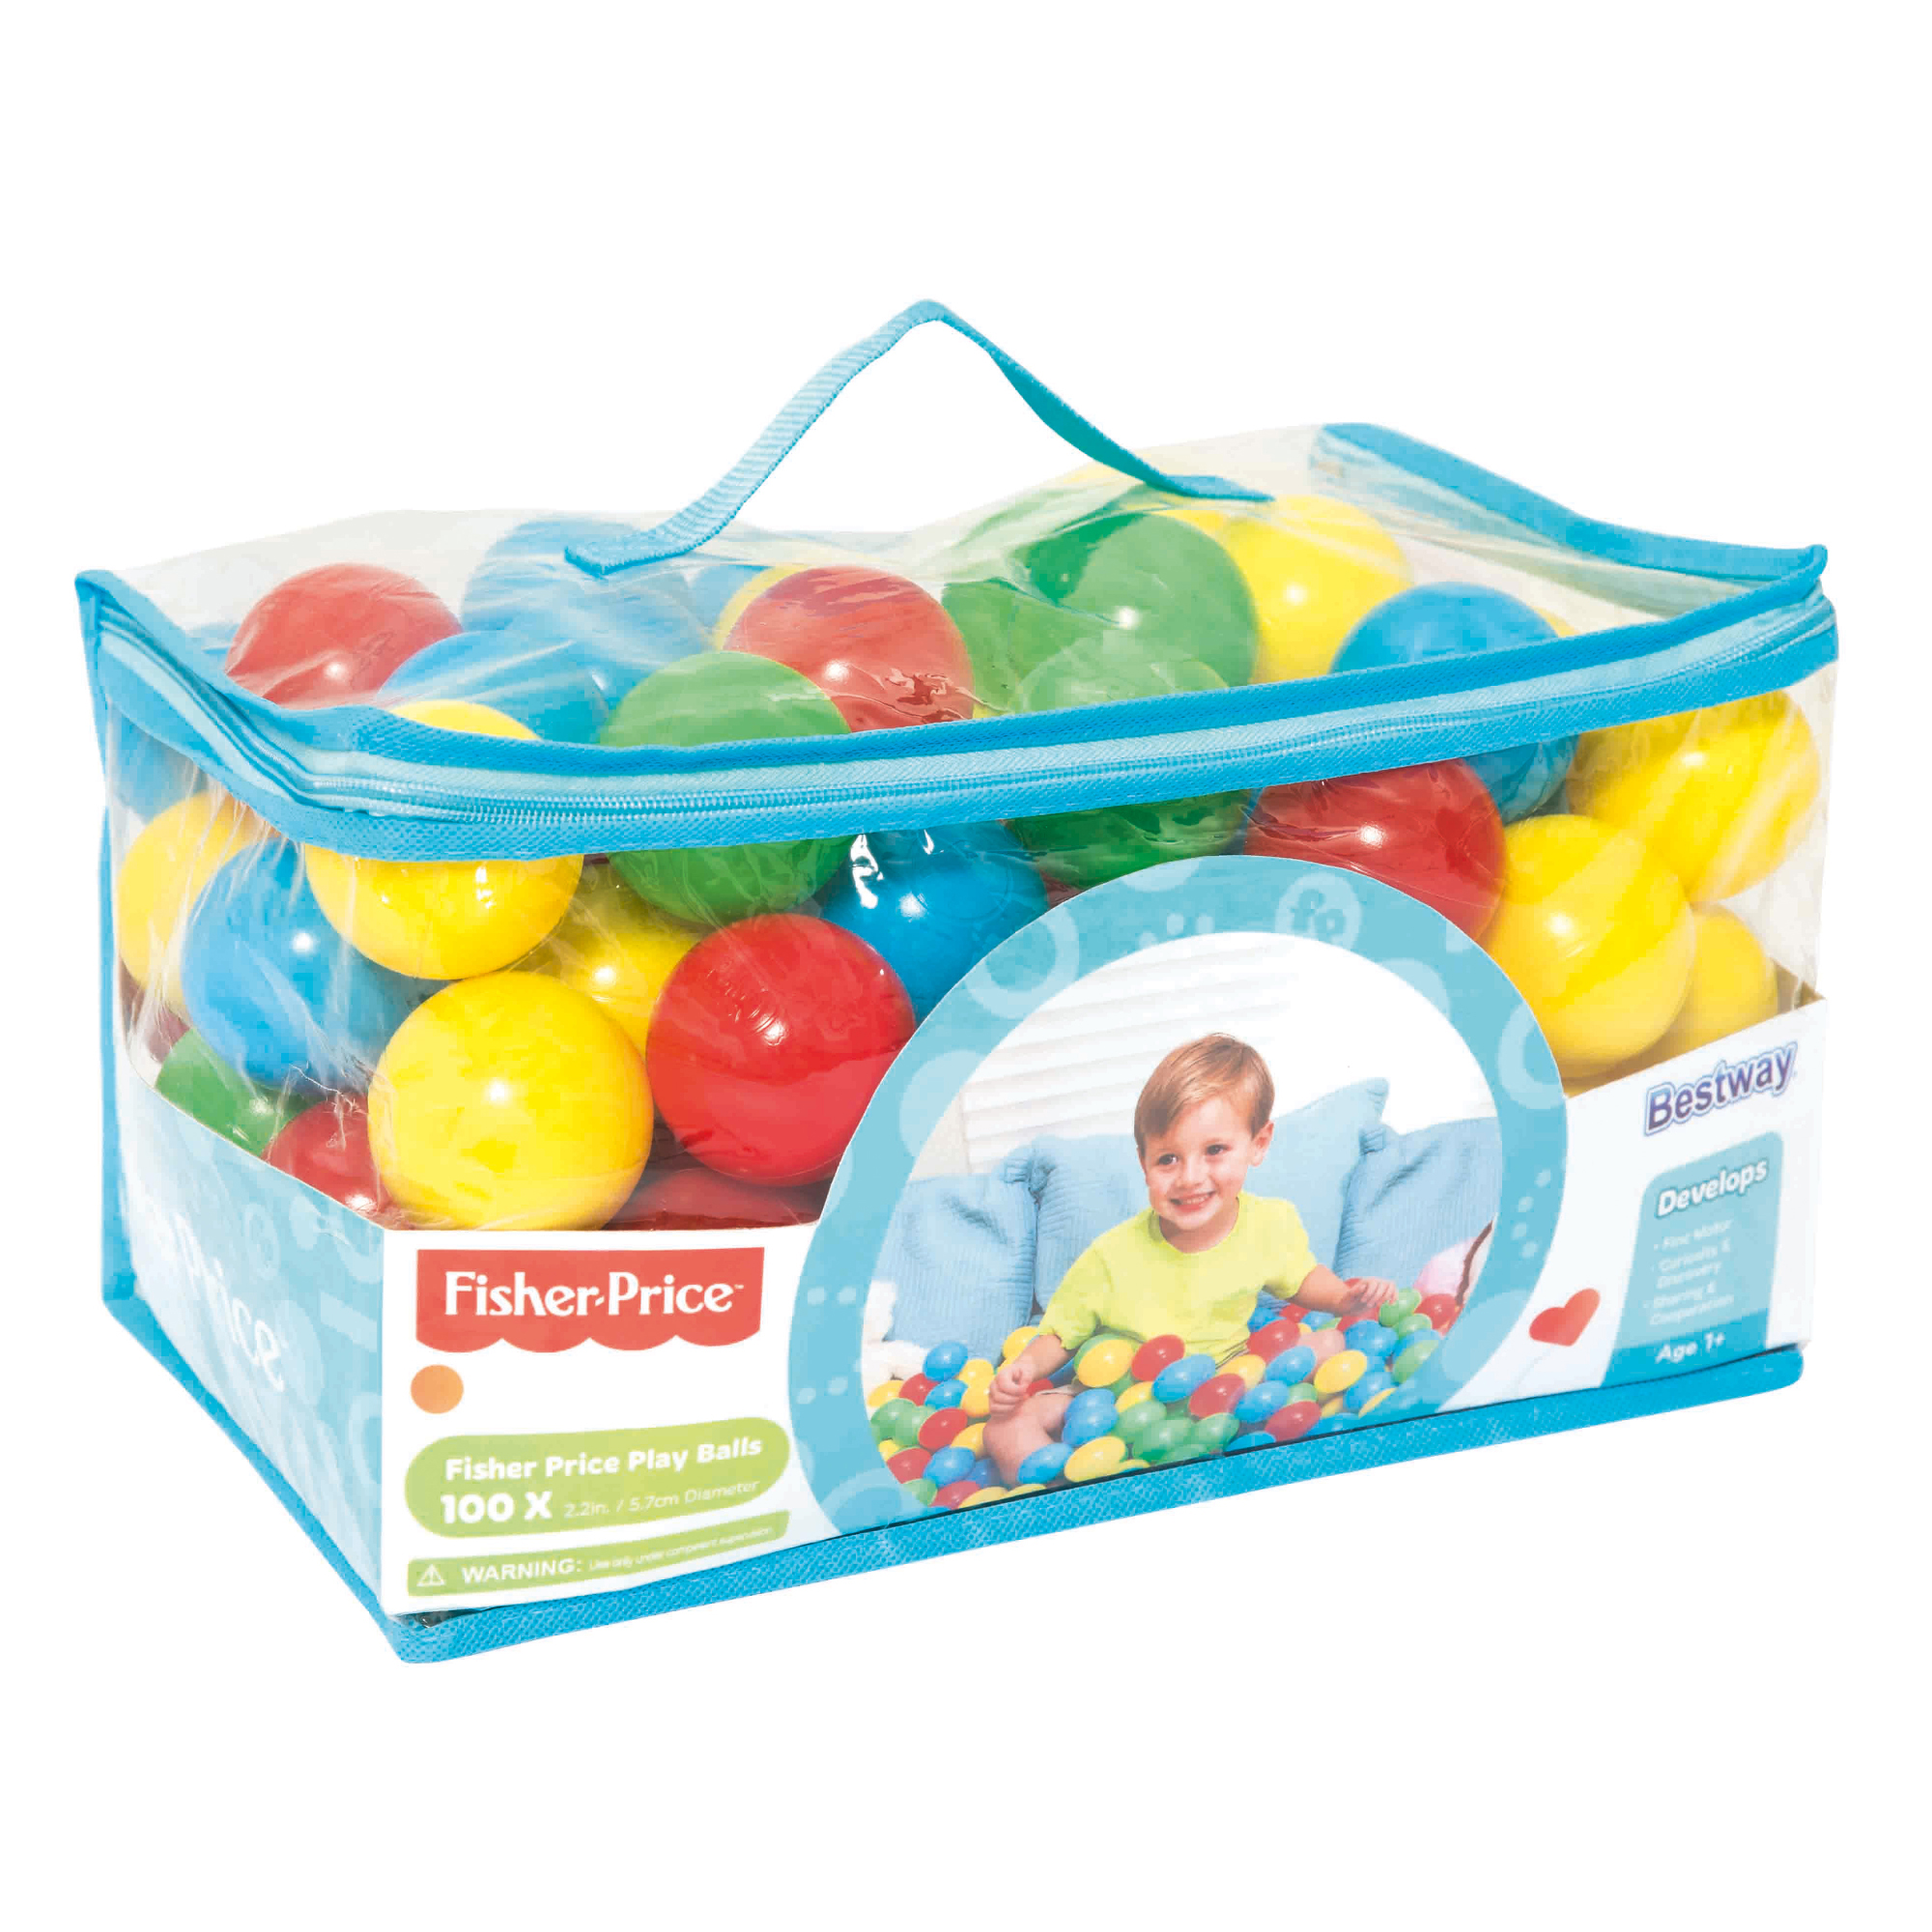 Fisher Price 2.2 Inches 100 Play Balls by Bestway